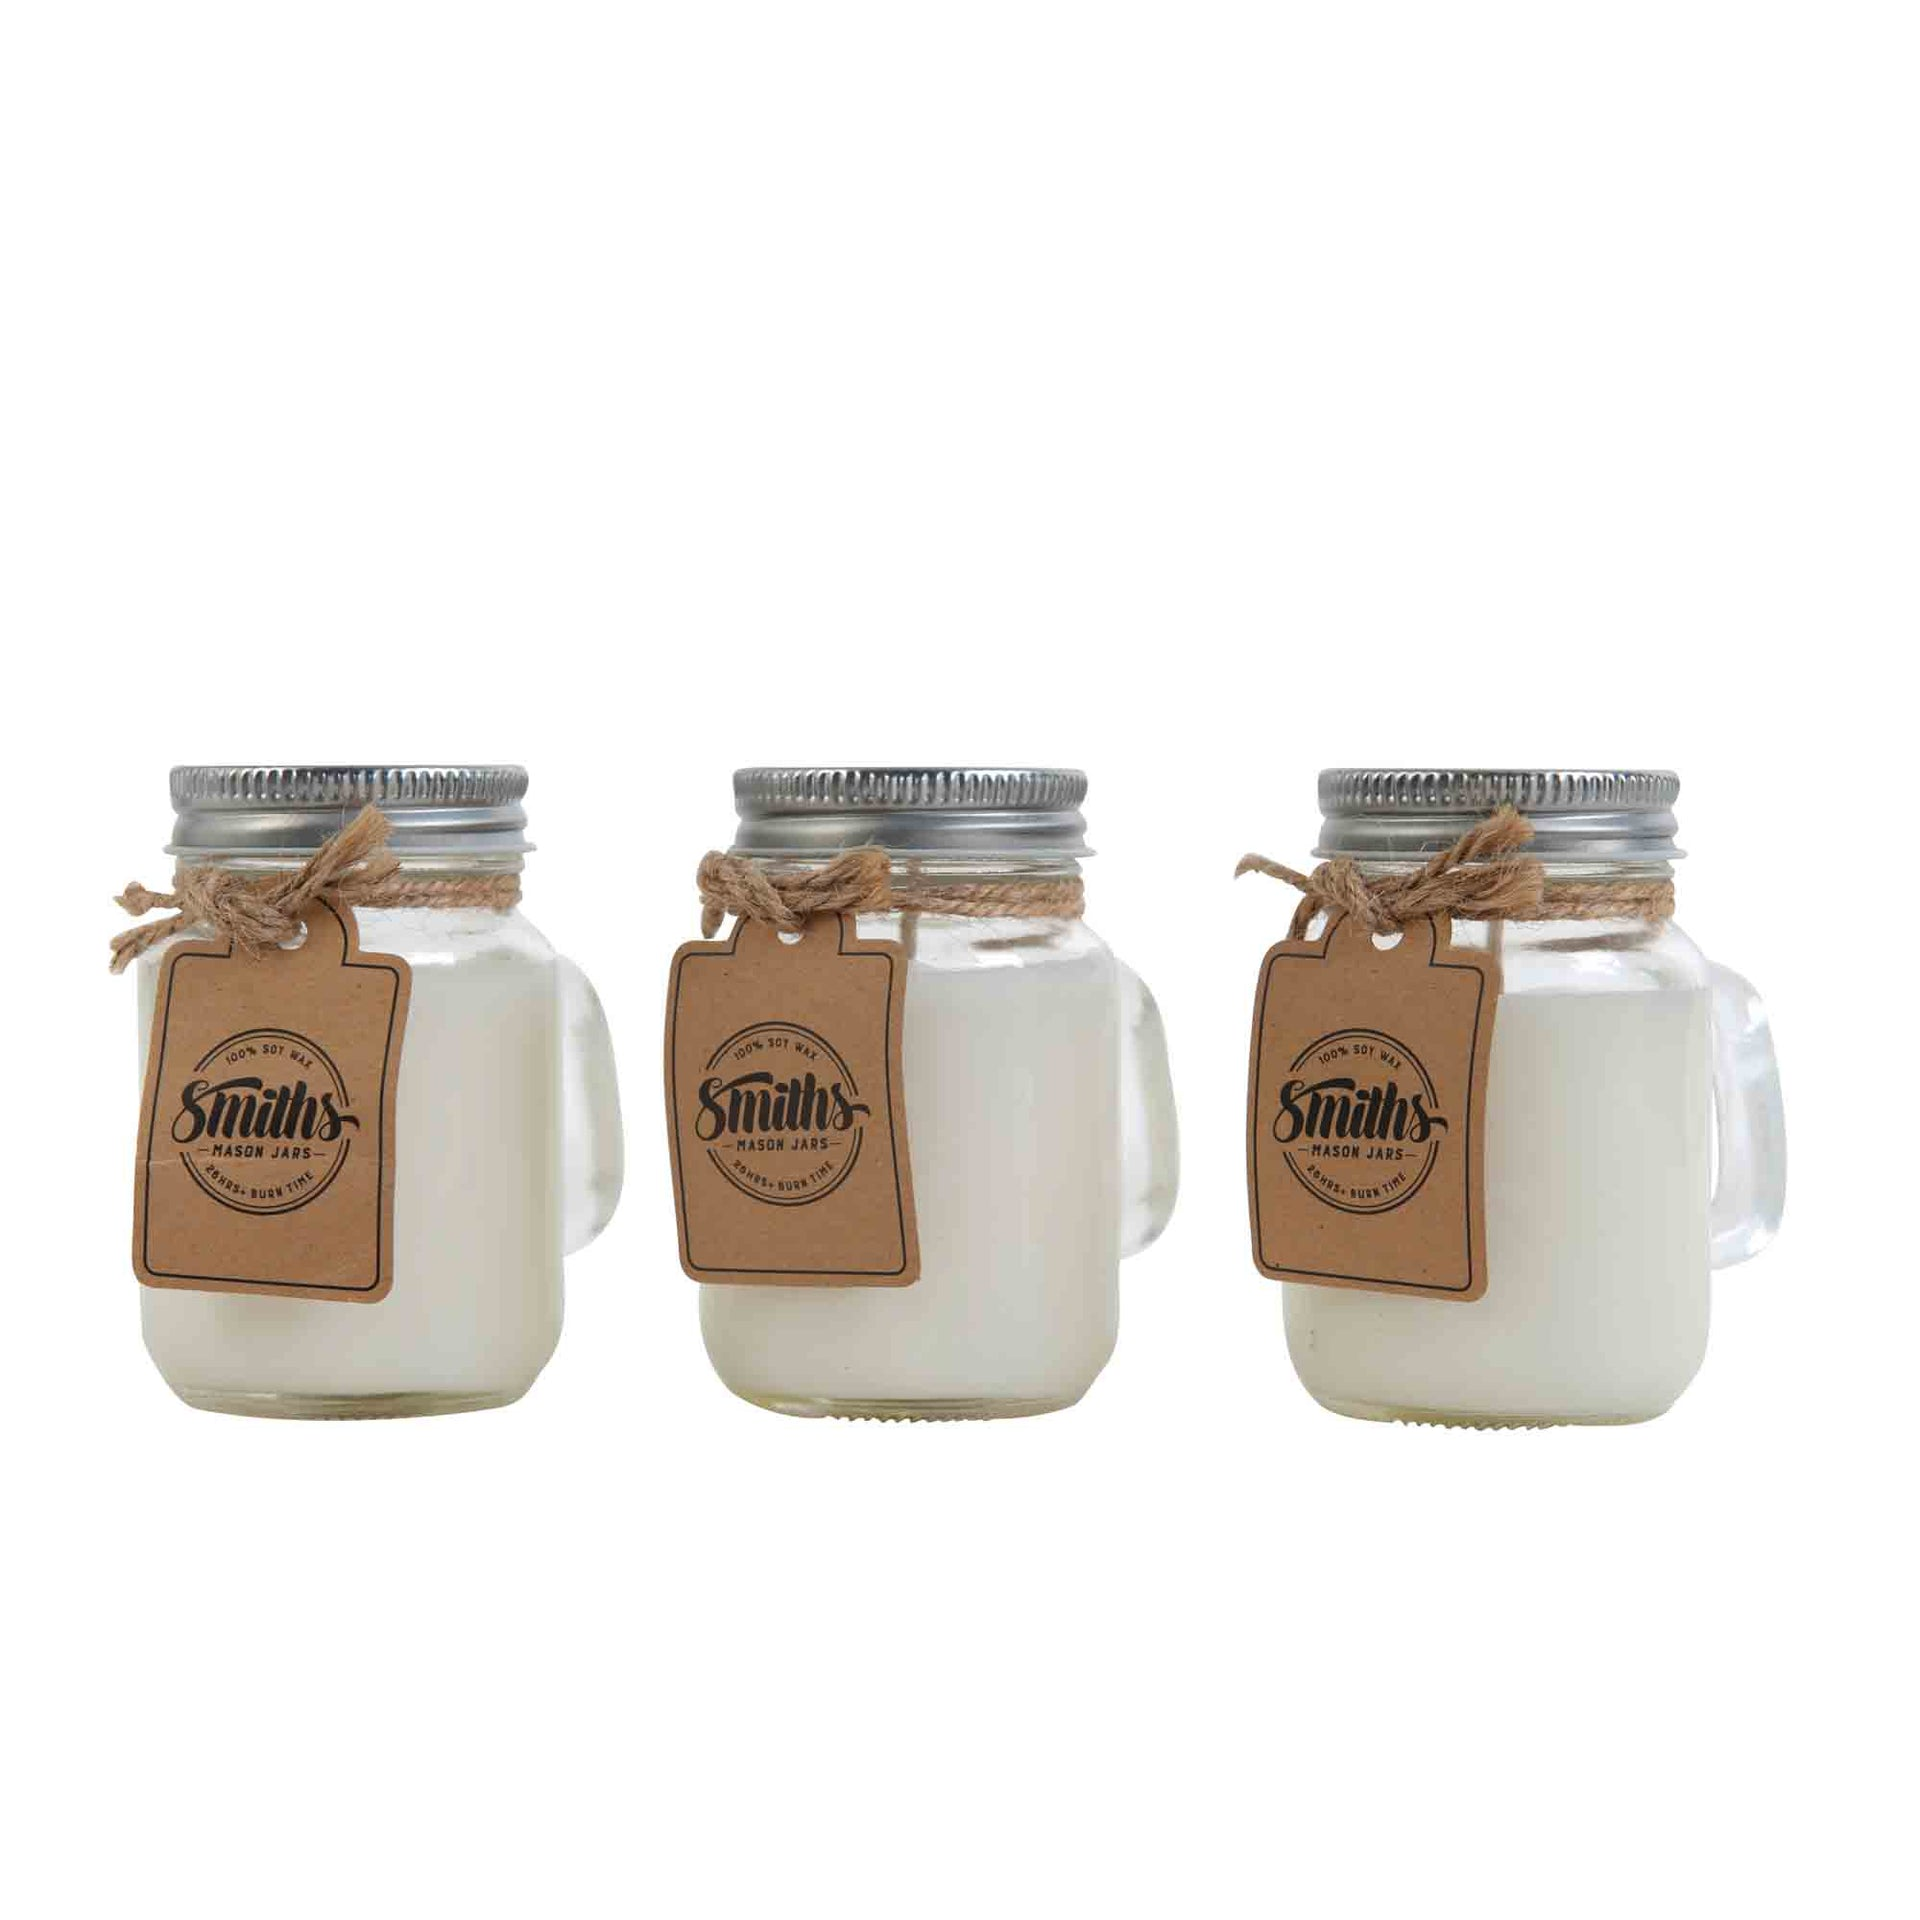 Set of 6 100% Soy Candles in Decorative Mini Mason Jars 4oz or 120ml, Organic, Vegan with Lead-free Pure Cotton Wick, lights Up to 26-hours+ Burn Time Per Candle - Scents include Mindful Lilly, Relaxing Lilac, Midnight Calm, and more